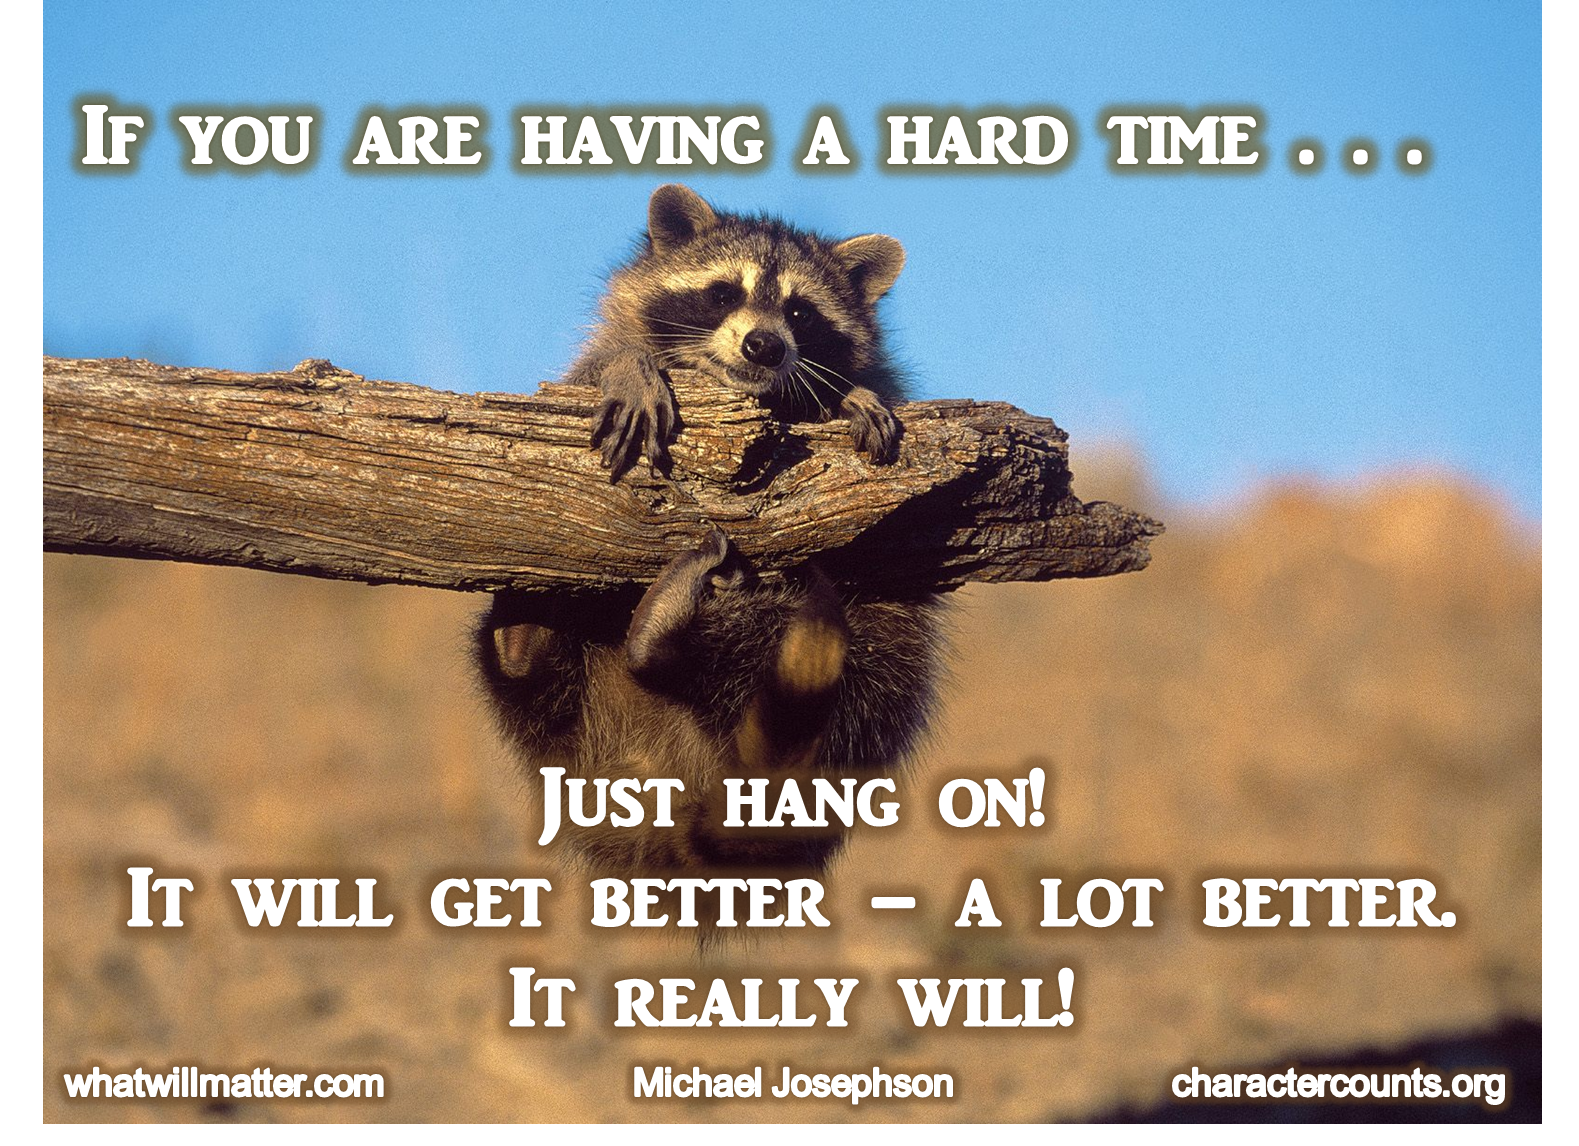 Hope For Better Days Quotes Quotesgram: There Will Be Better Days Quotes. QuotesGram